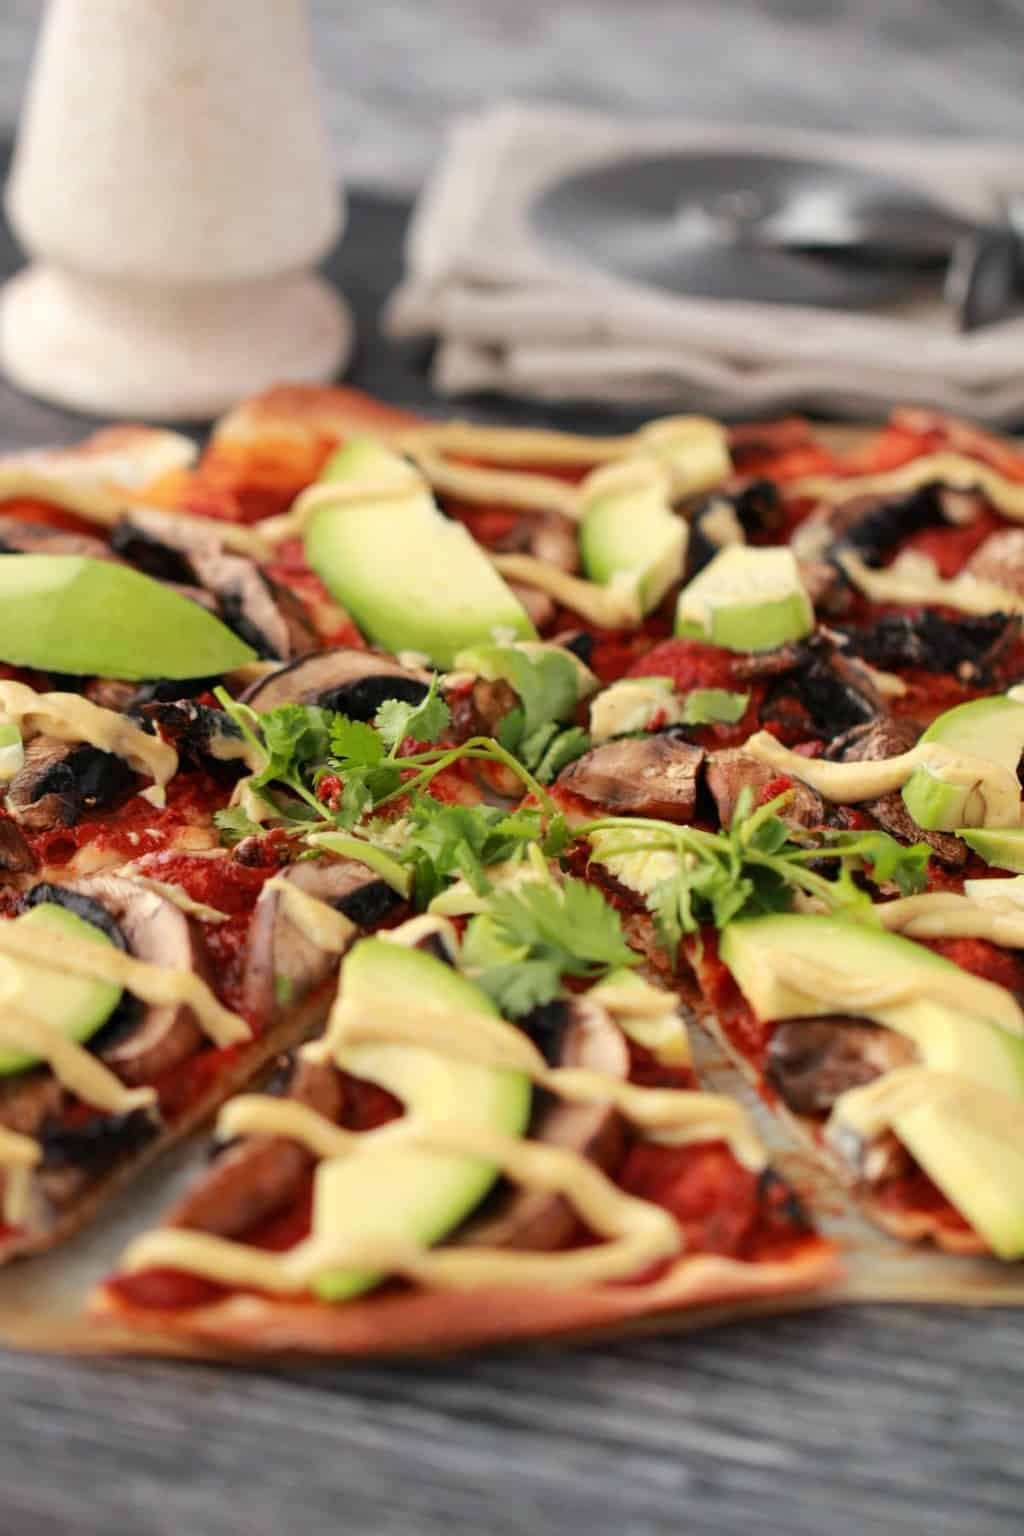 Sliced homemade pizza topped with tomato sauce, black mushrooms, sliced avocado and drizzled cashew cheese, with a napkin and pizza cutter in the background